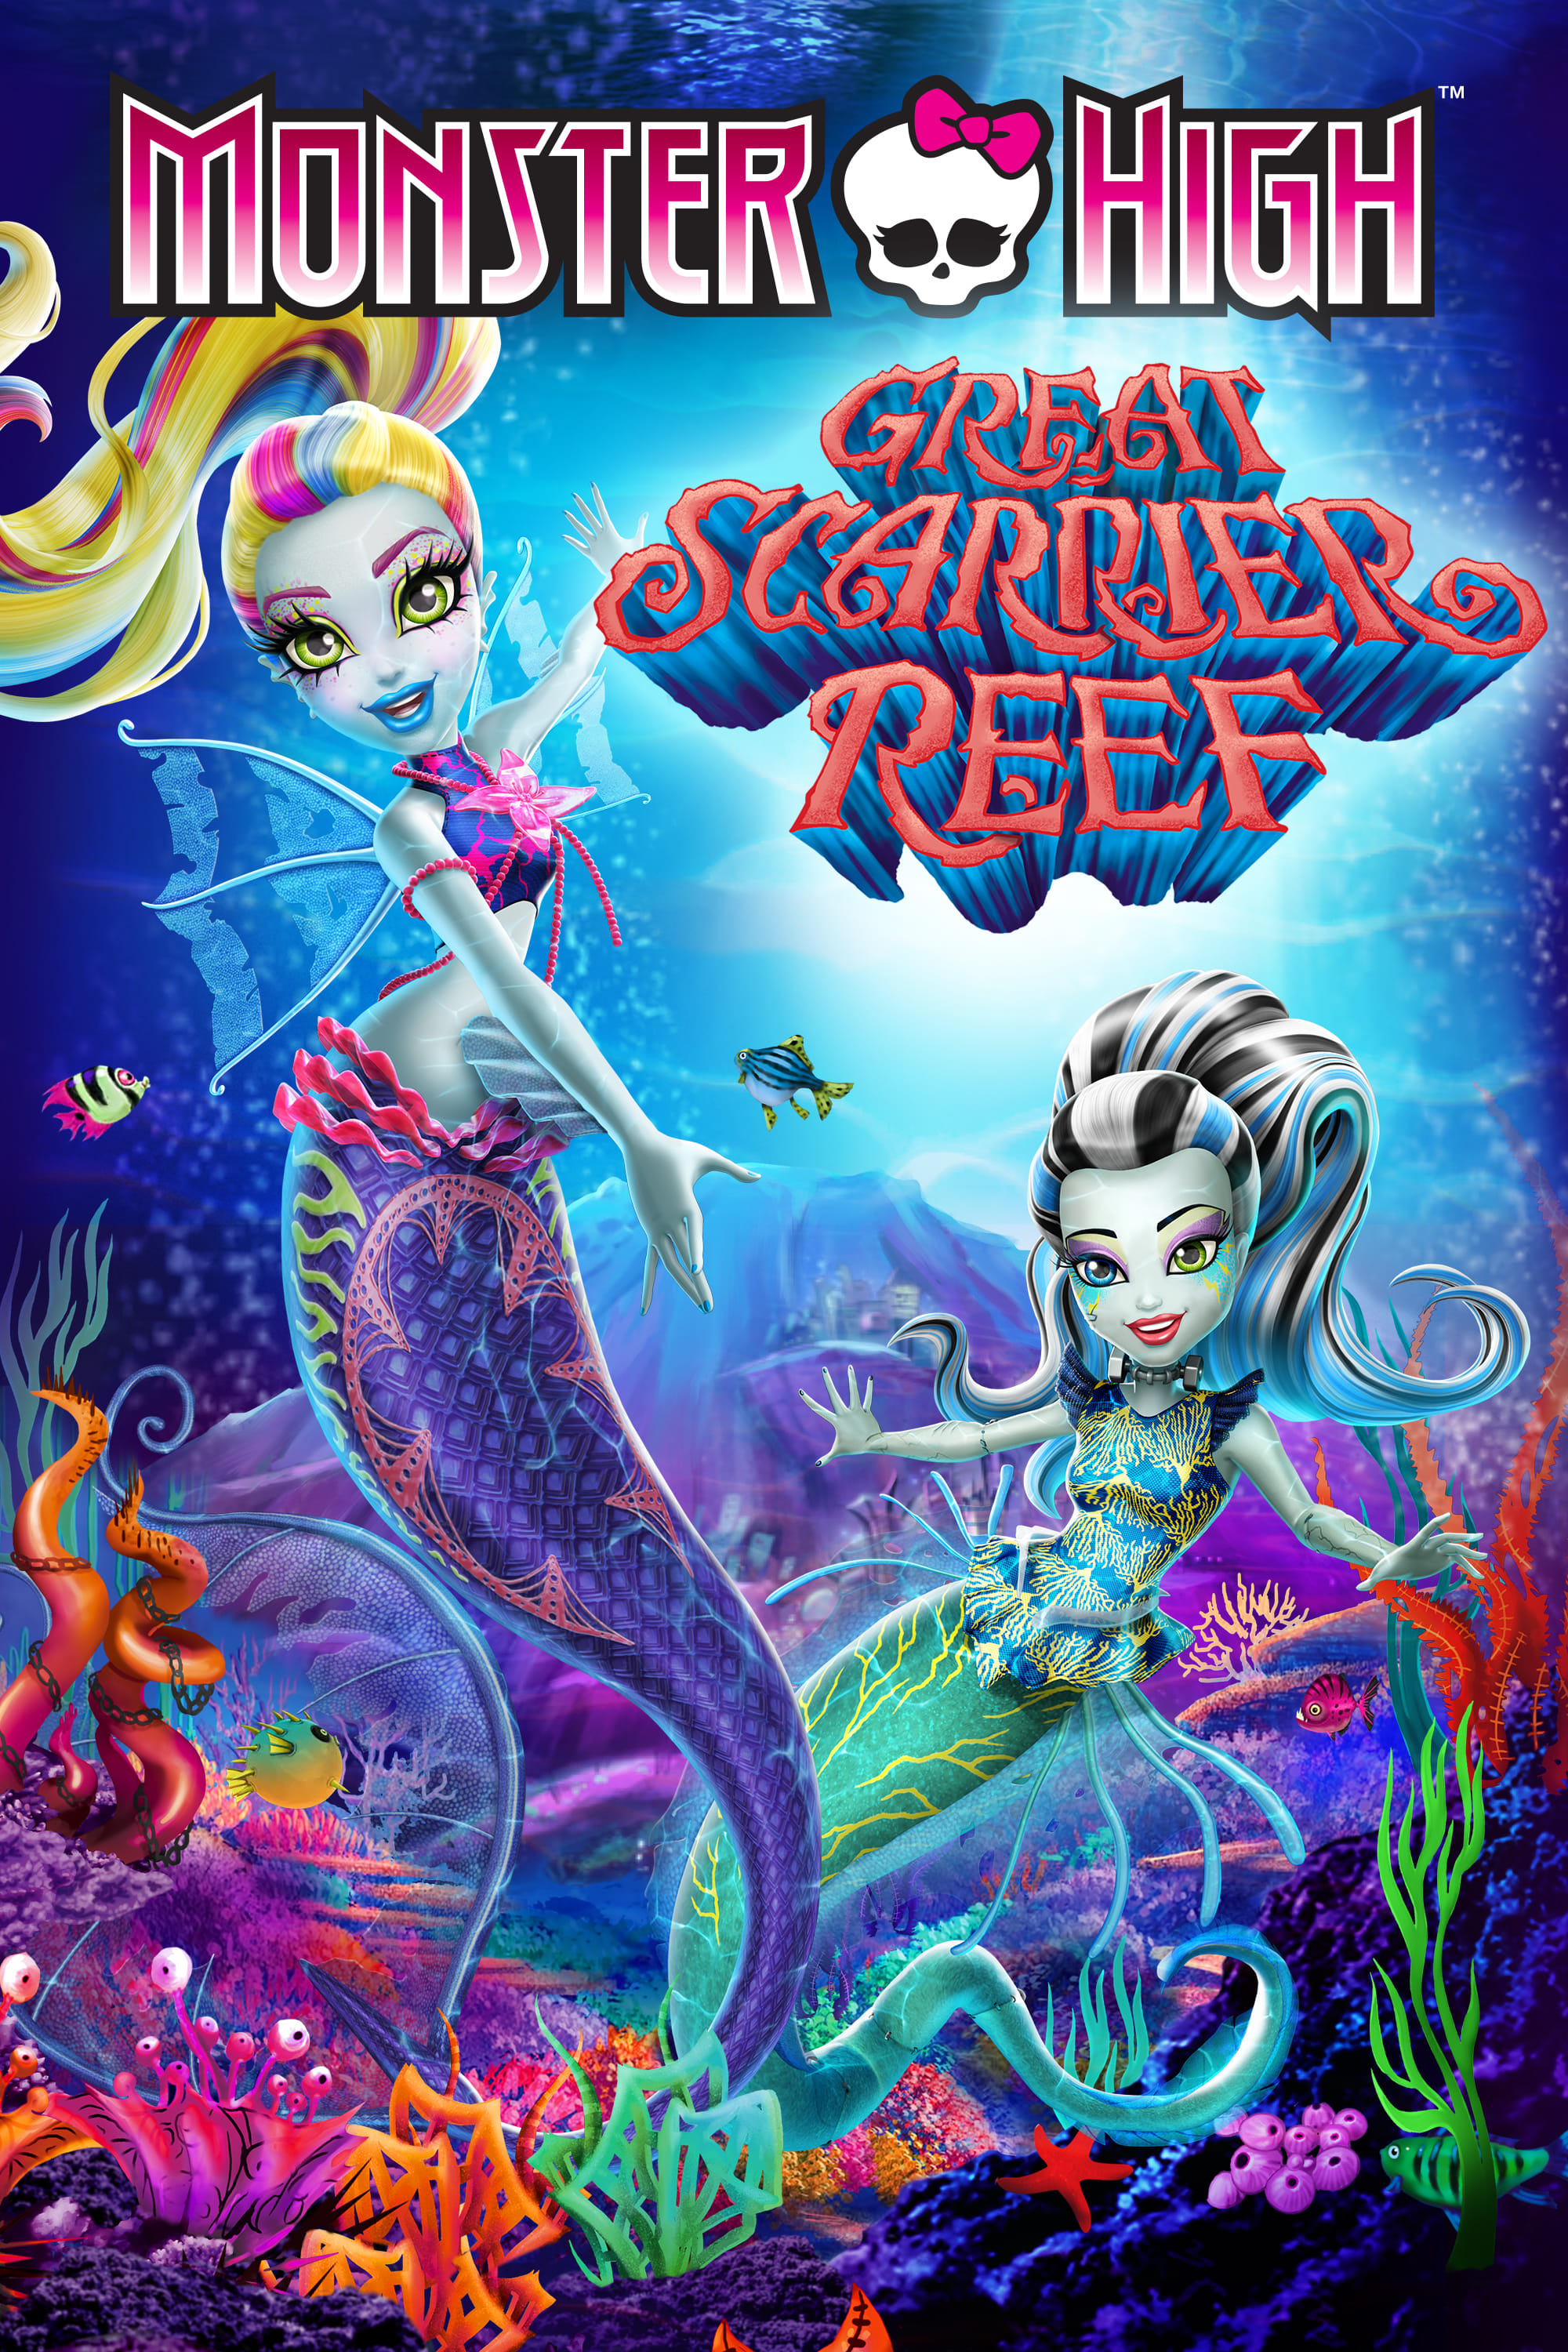 Monster High: Great Scarrier Reef (2016)